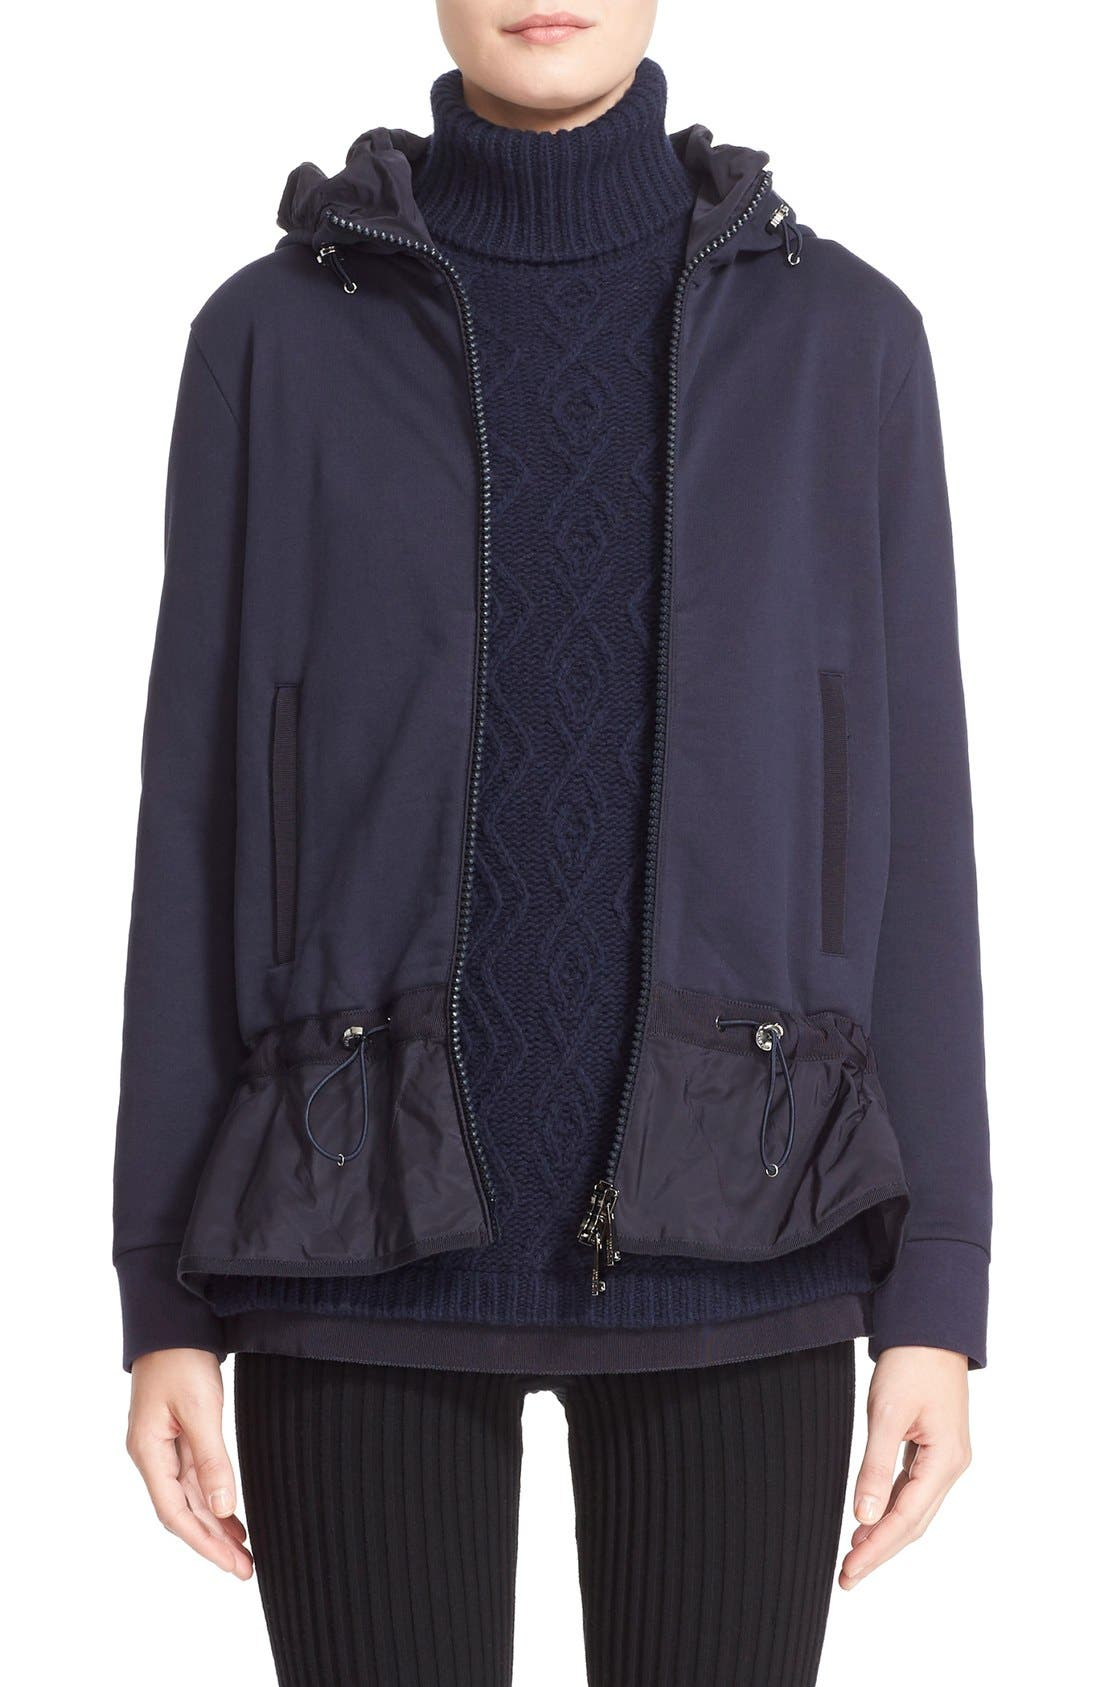 MONCLER Peplum Hem Hooded Cotton Jacket